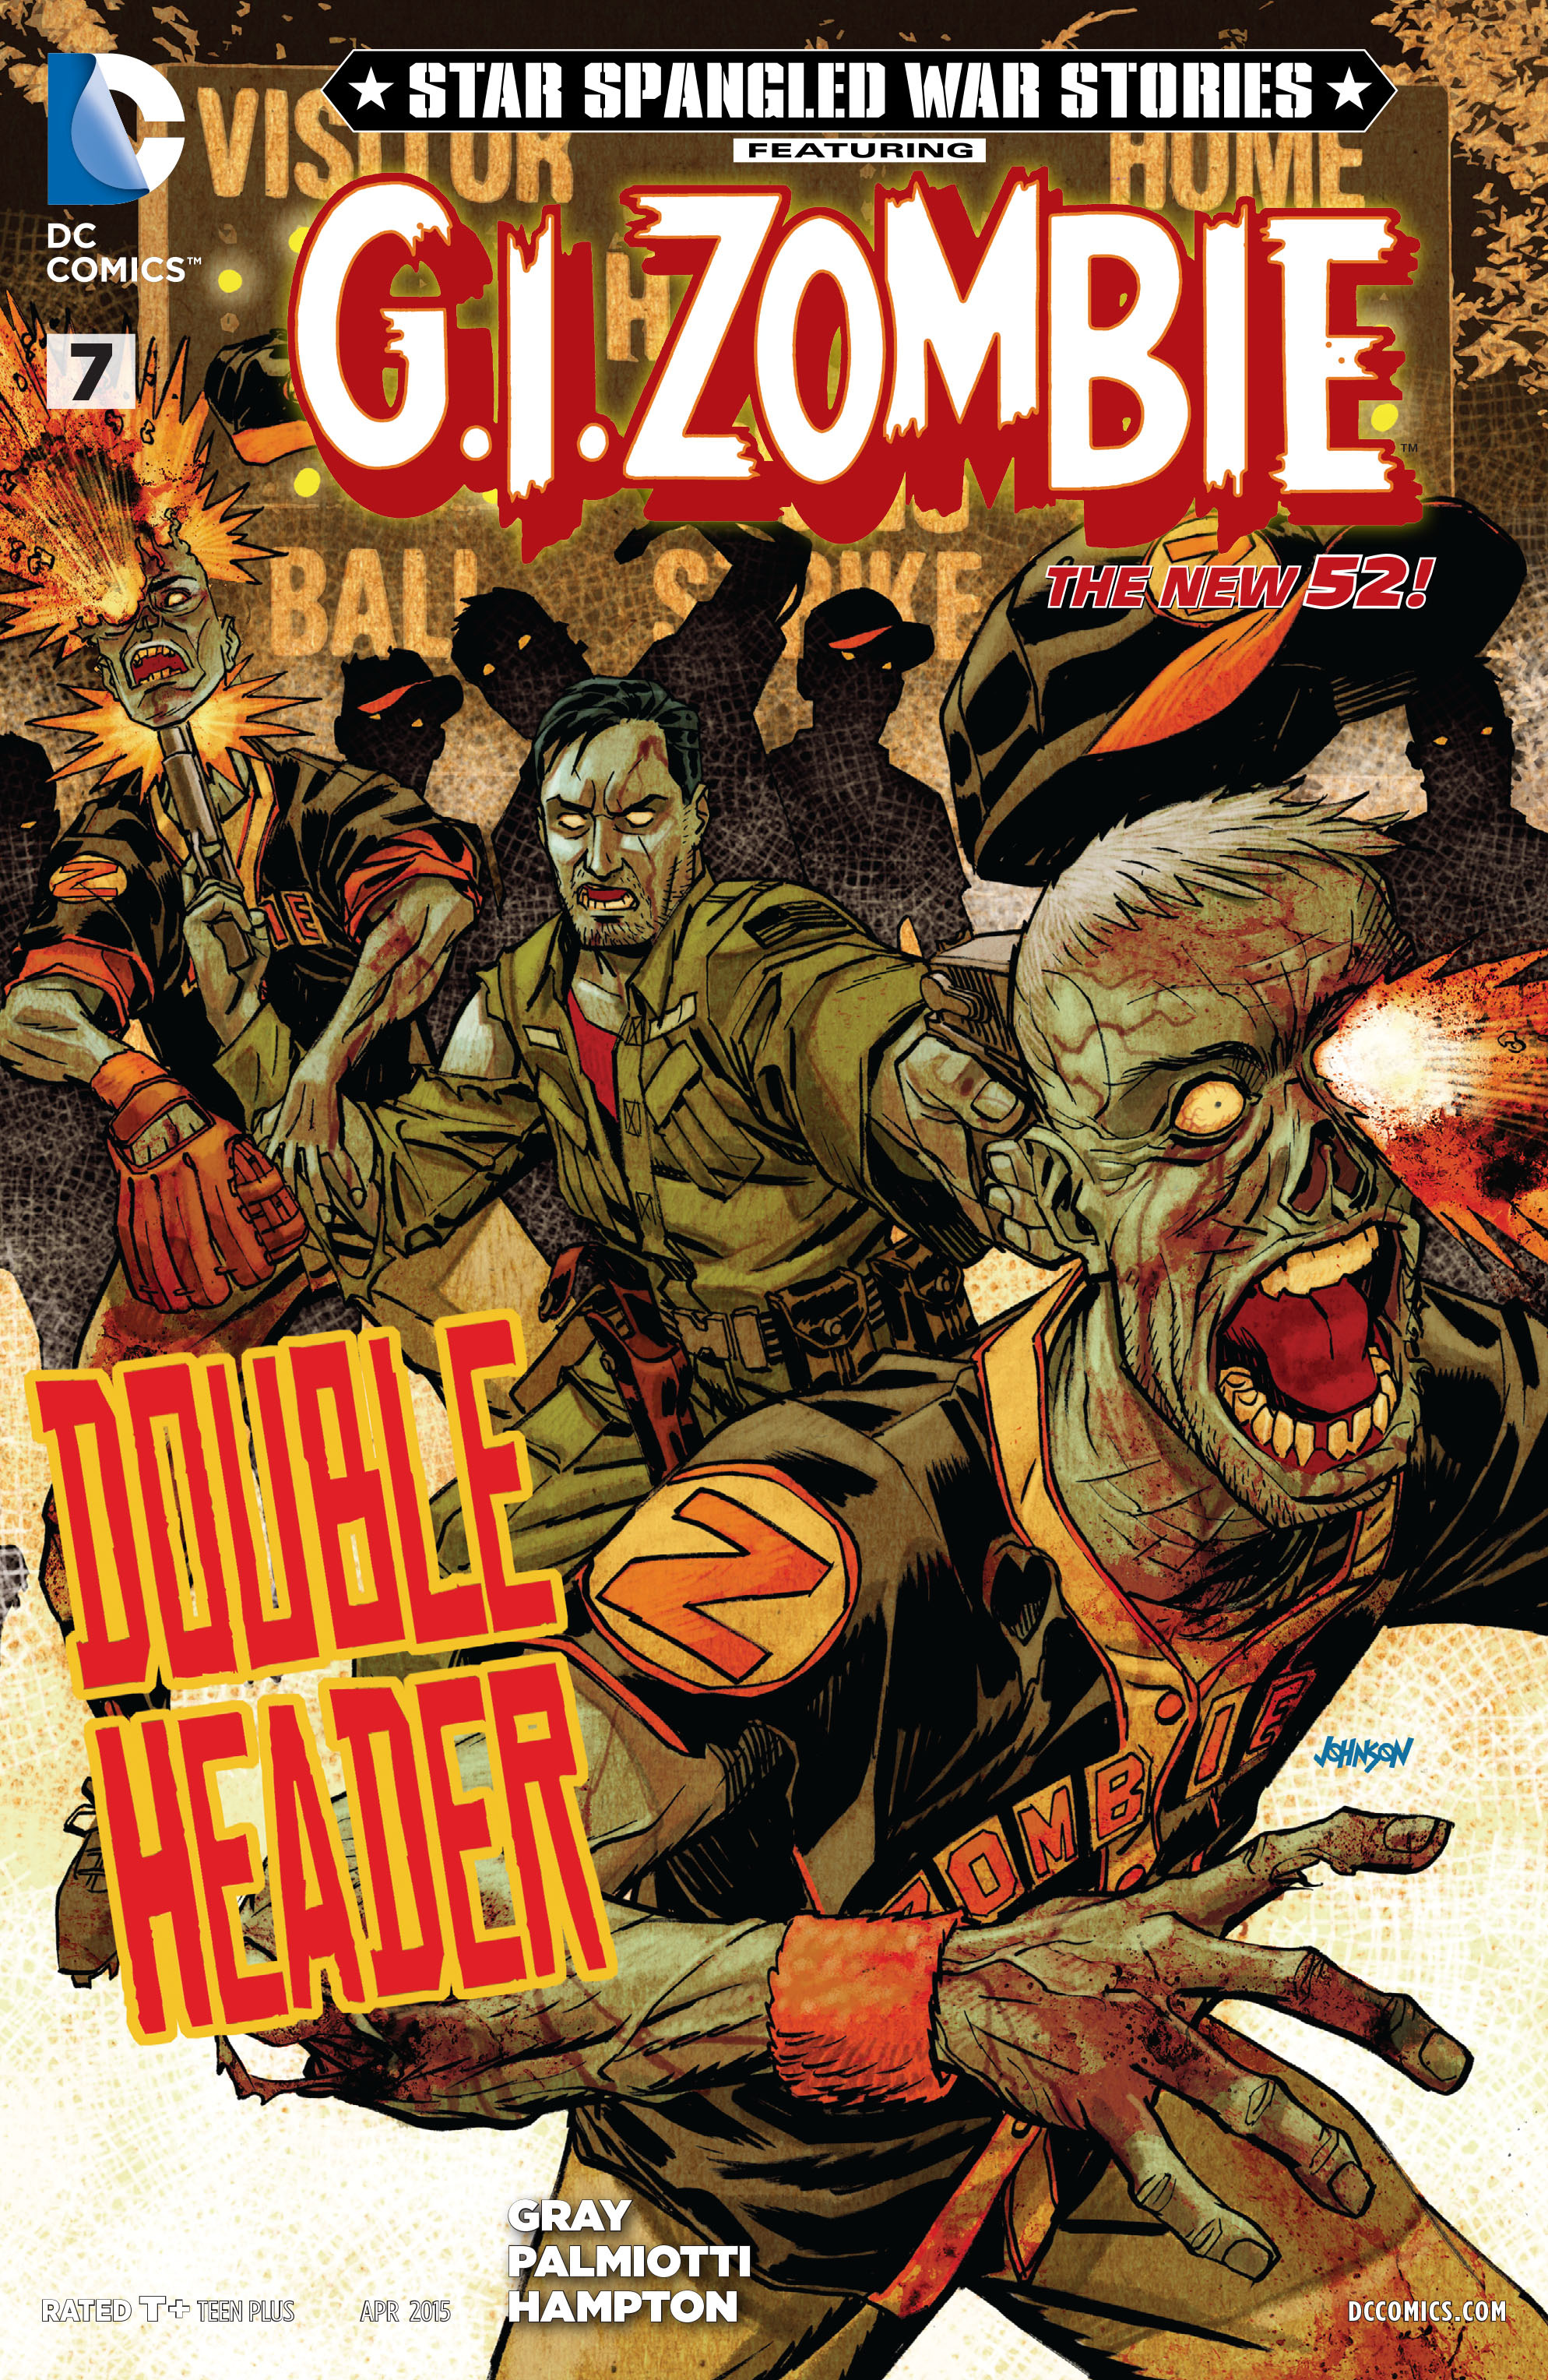 Star-Spangled War Stories Featuring G.I. Zombie Vol 1 7